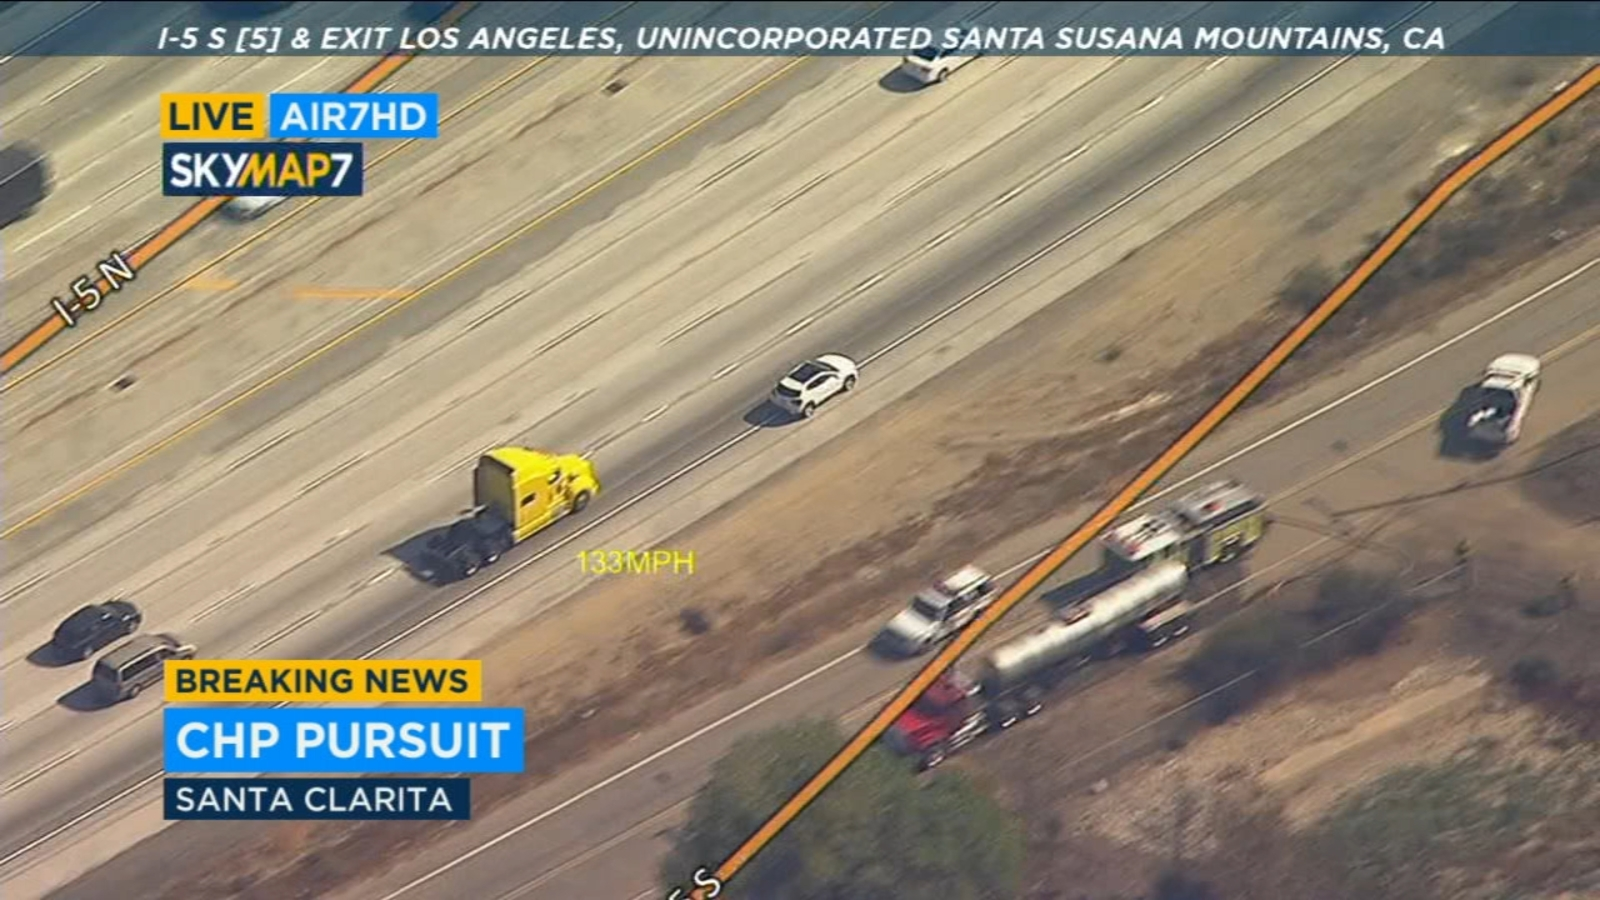 Suspect surrenders in Sylmar after leading CHP on erratic high-speed chase on southbound 5 Fwy